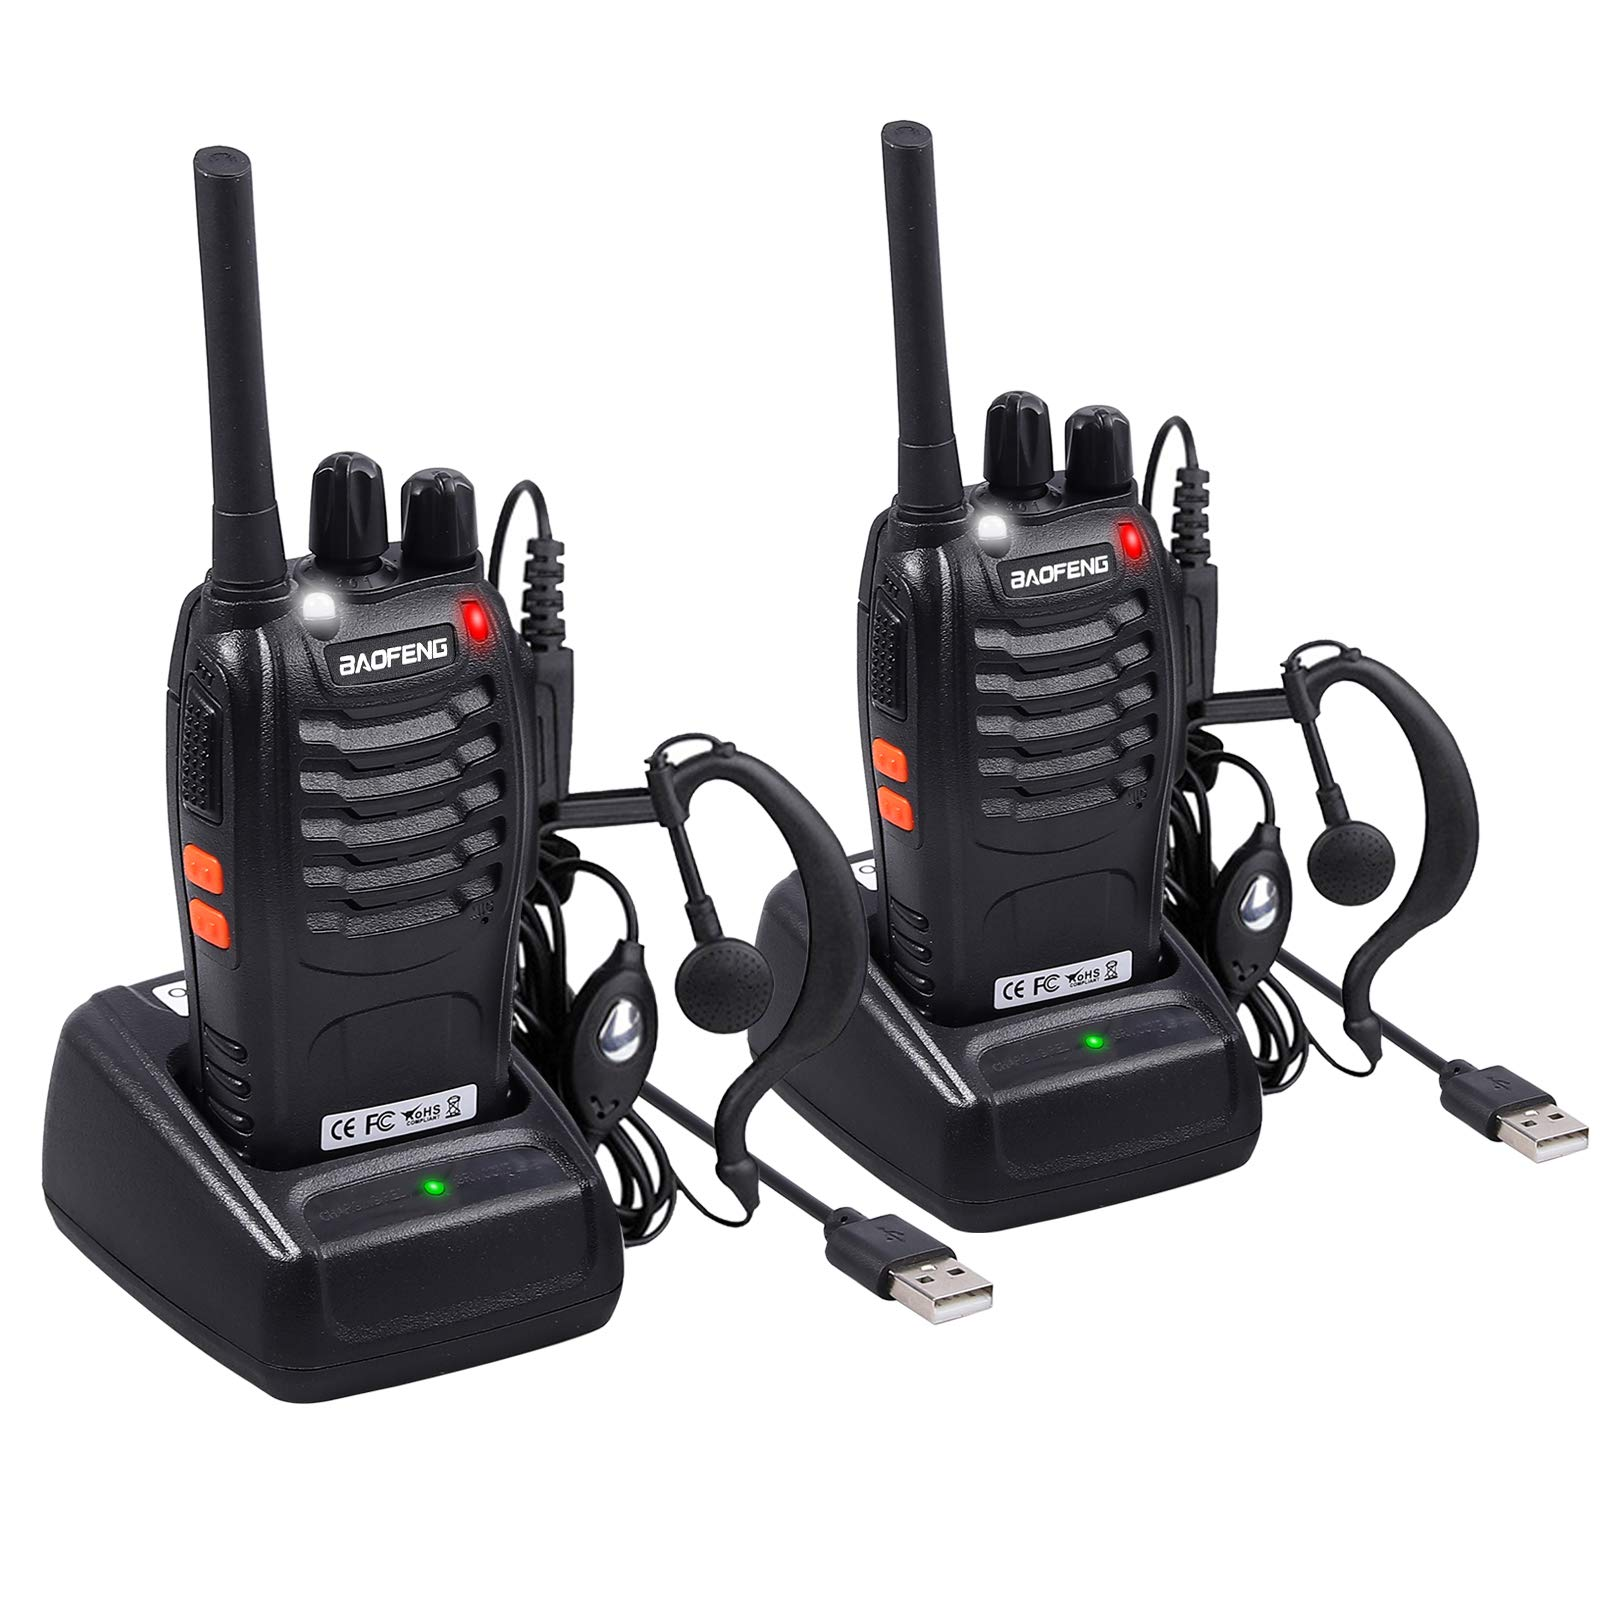 Neoteck 2 PCS Walkie Talkies Long Range 16 Channel 2 Way Radio FRS462MHz Walky Talky Rechargeable with USB Charger Original Earpieces for Field Survival Biking Hiking by Neoteck (Image #1)